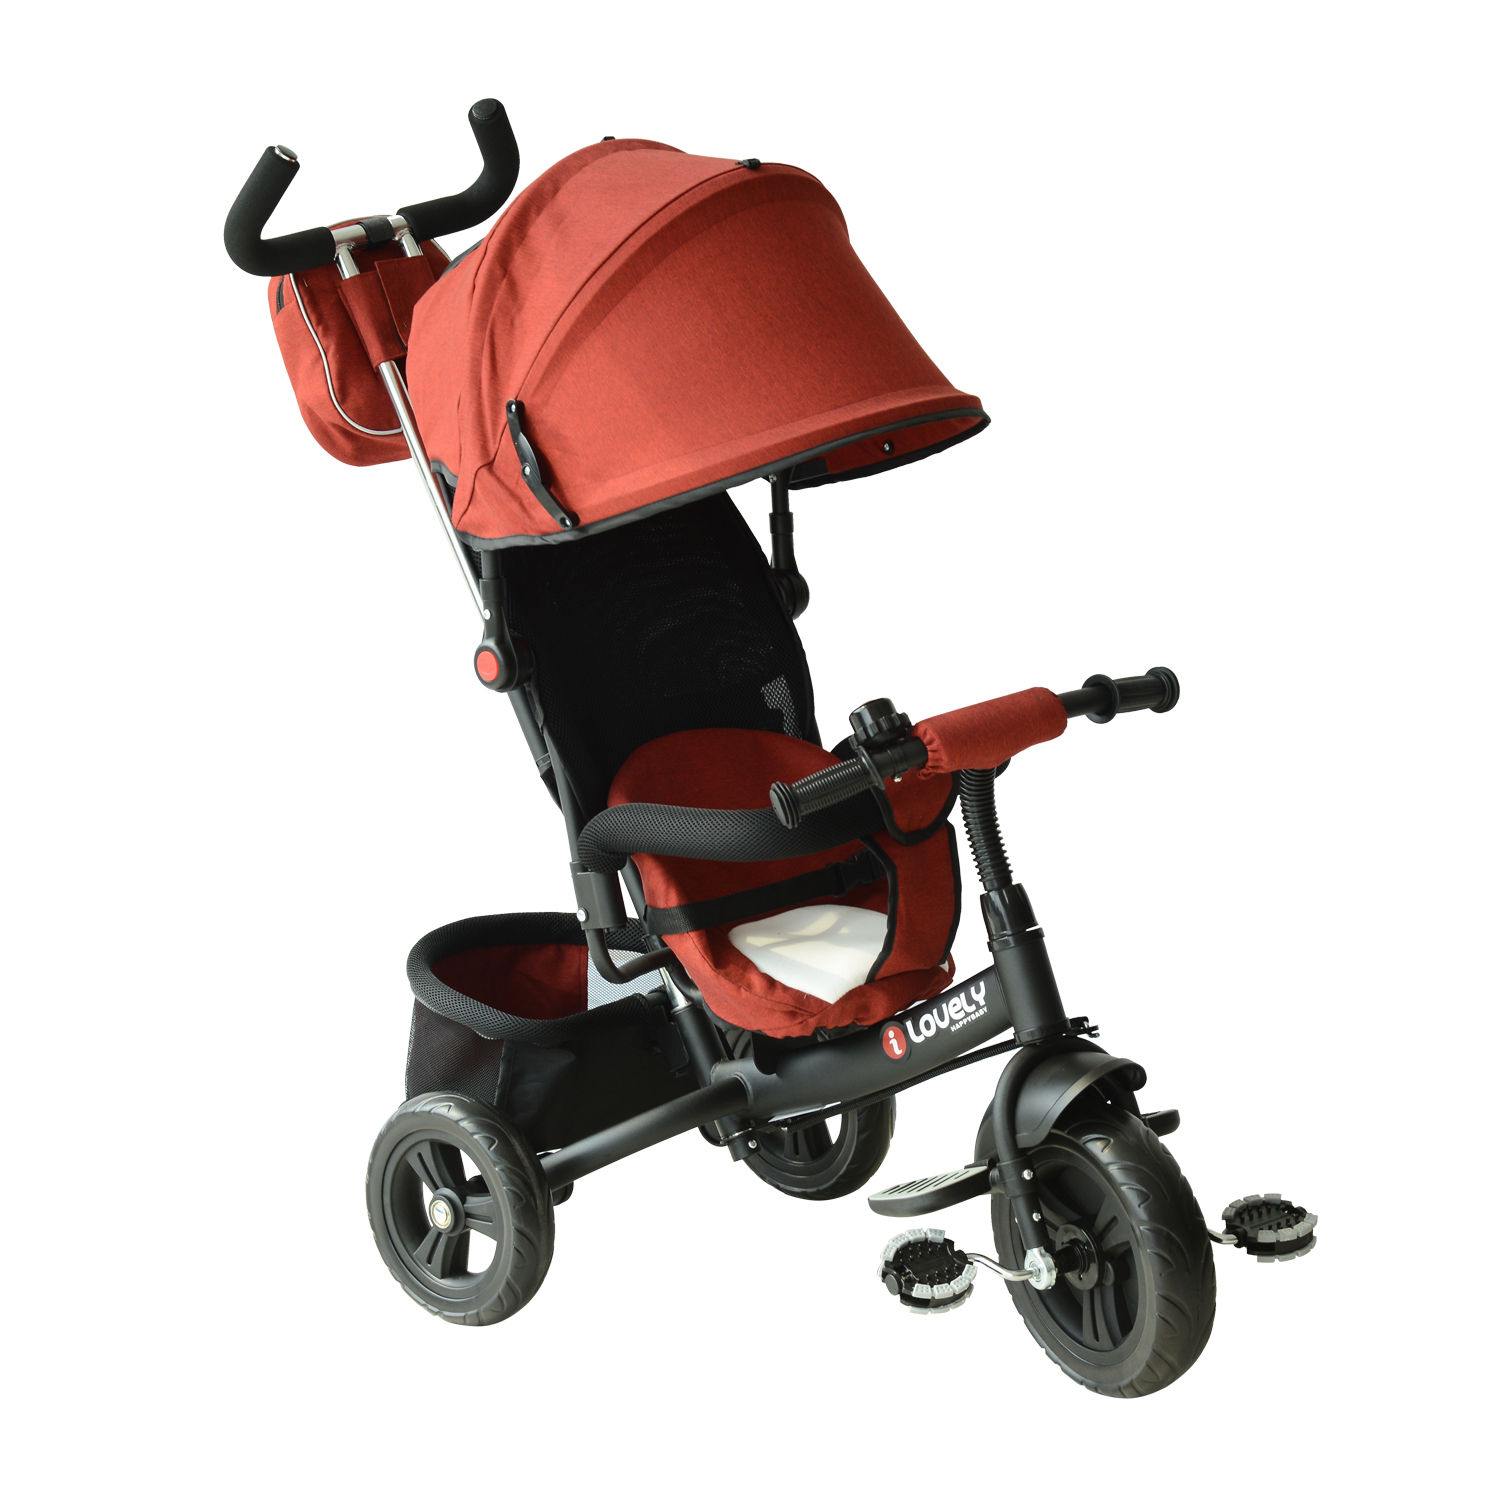 HOMCOM Kids Polyester Sun Canopy Ride-On Tricycle w/ Parent Handle Red